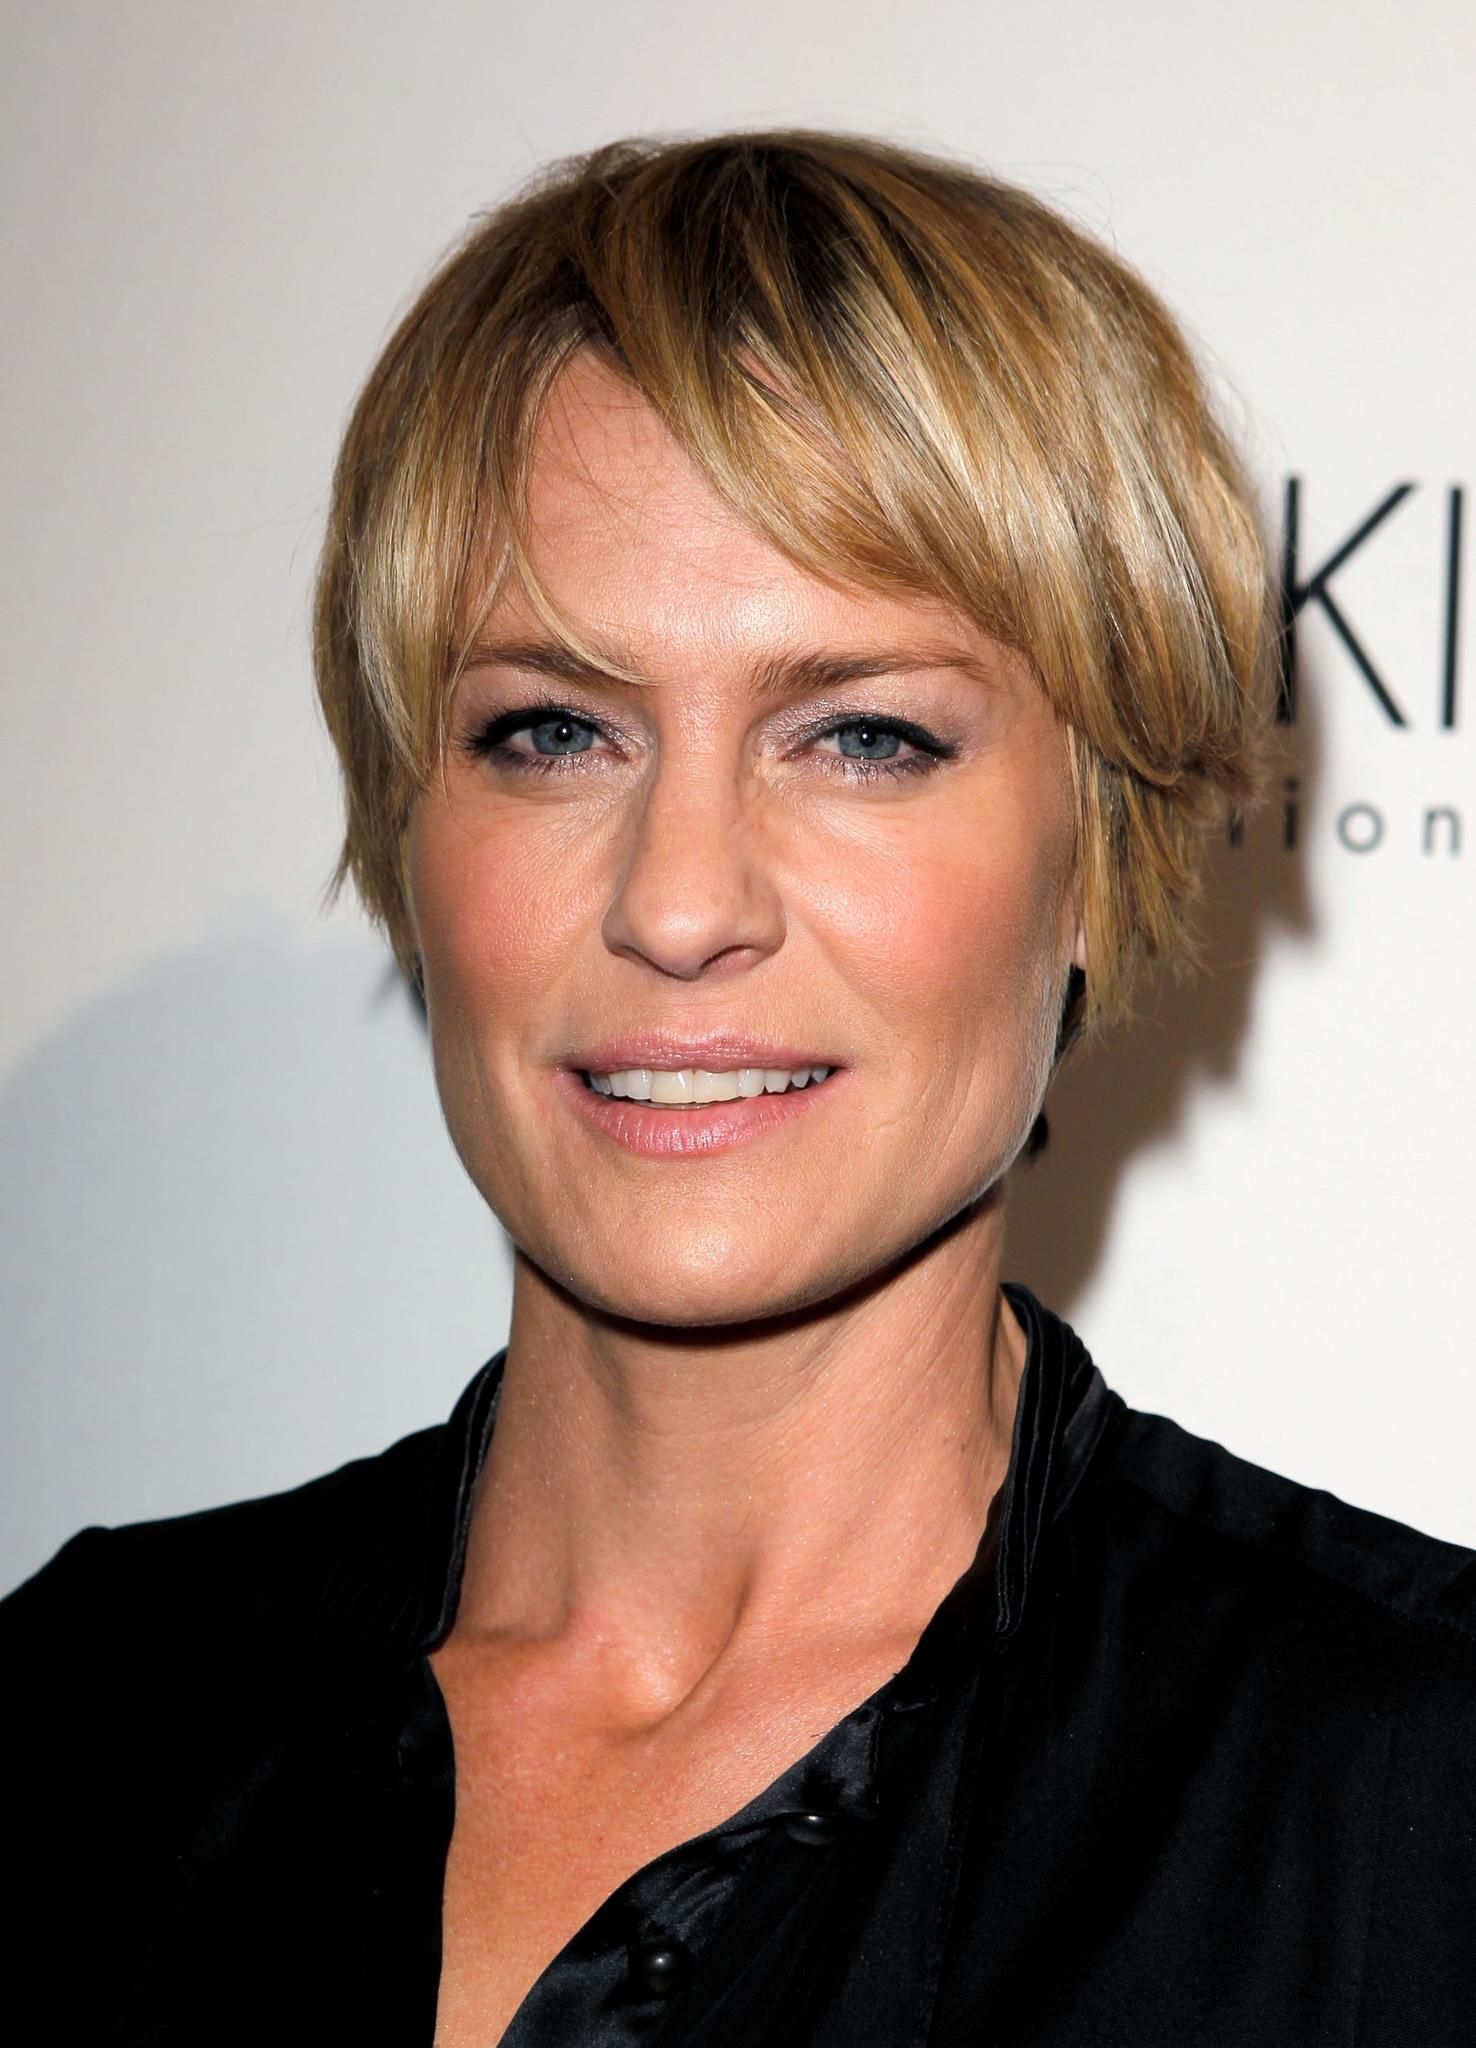 Claire Underwood Hair Robin Wright Hair Cuts Short Hair Styles